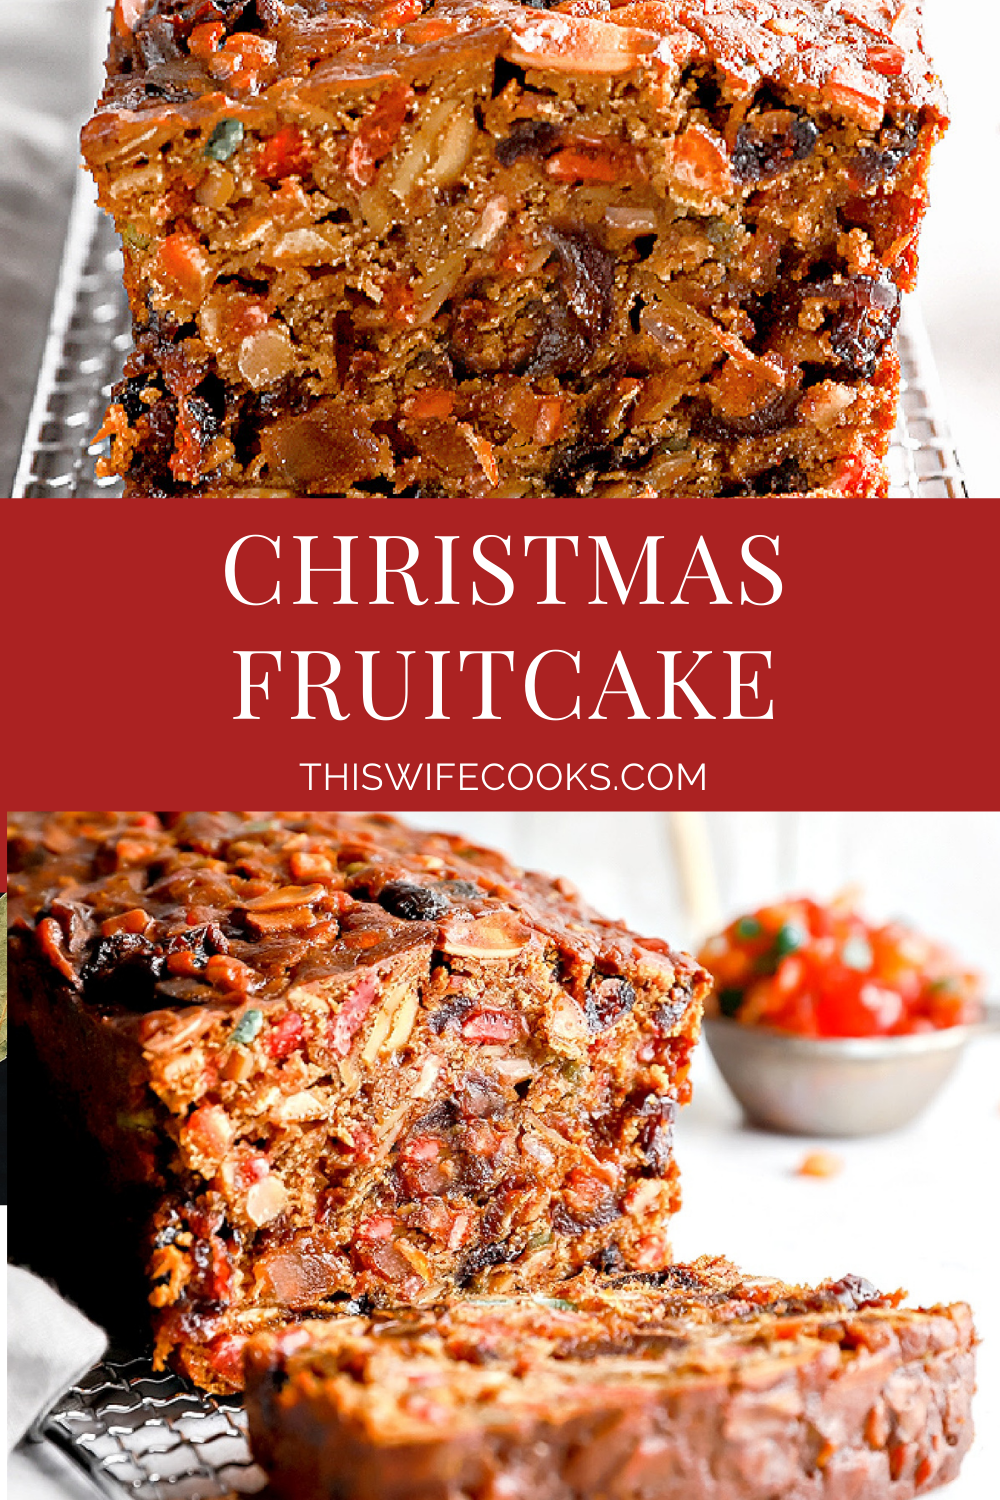 This classic Old English style fruitcake is rich, easy to make, and perfect for the holiday season! via @thiswifecooks